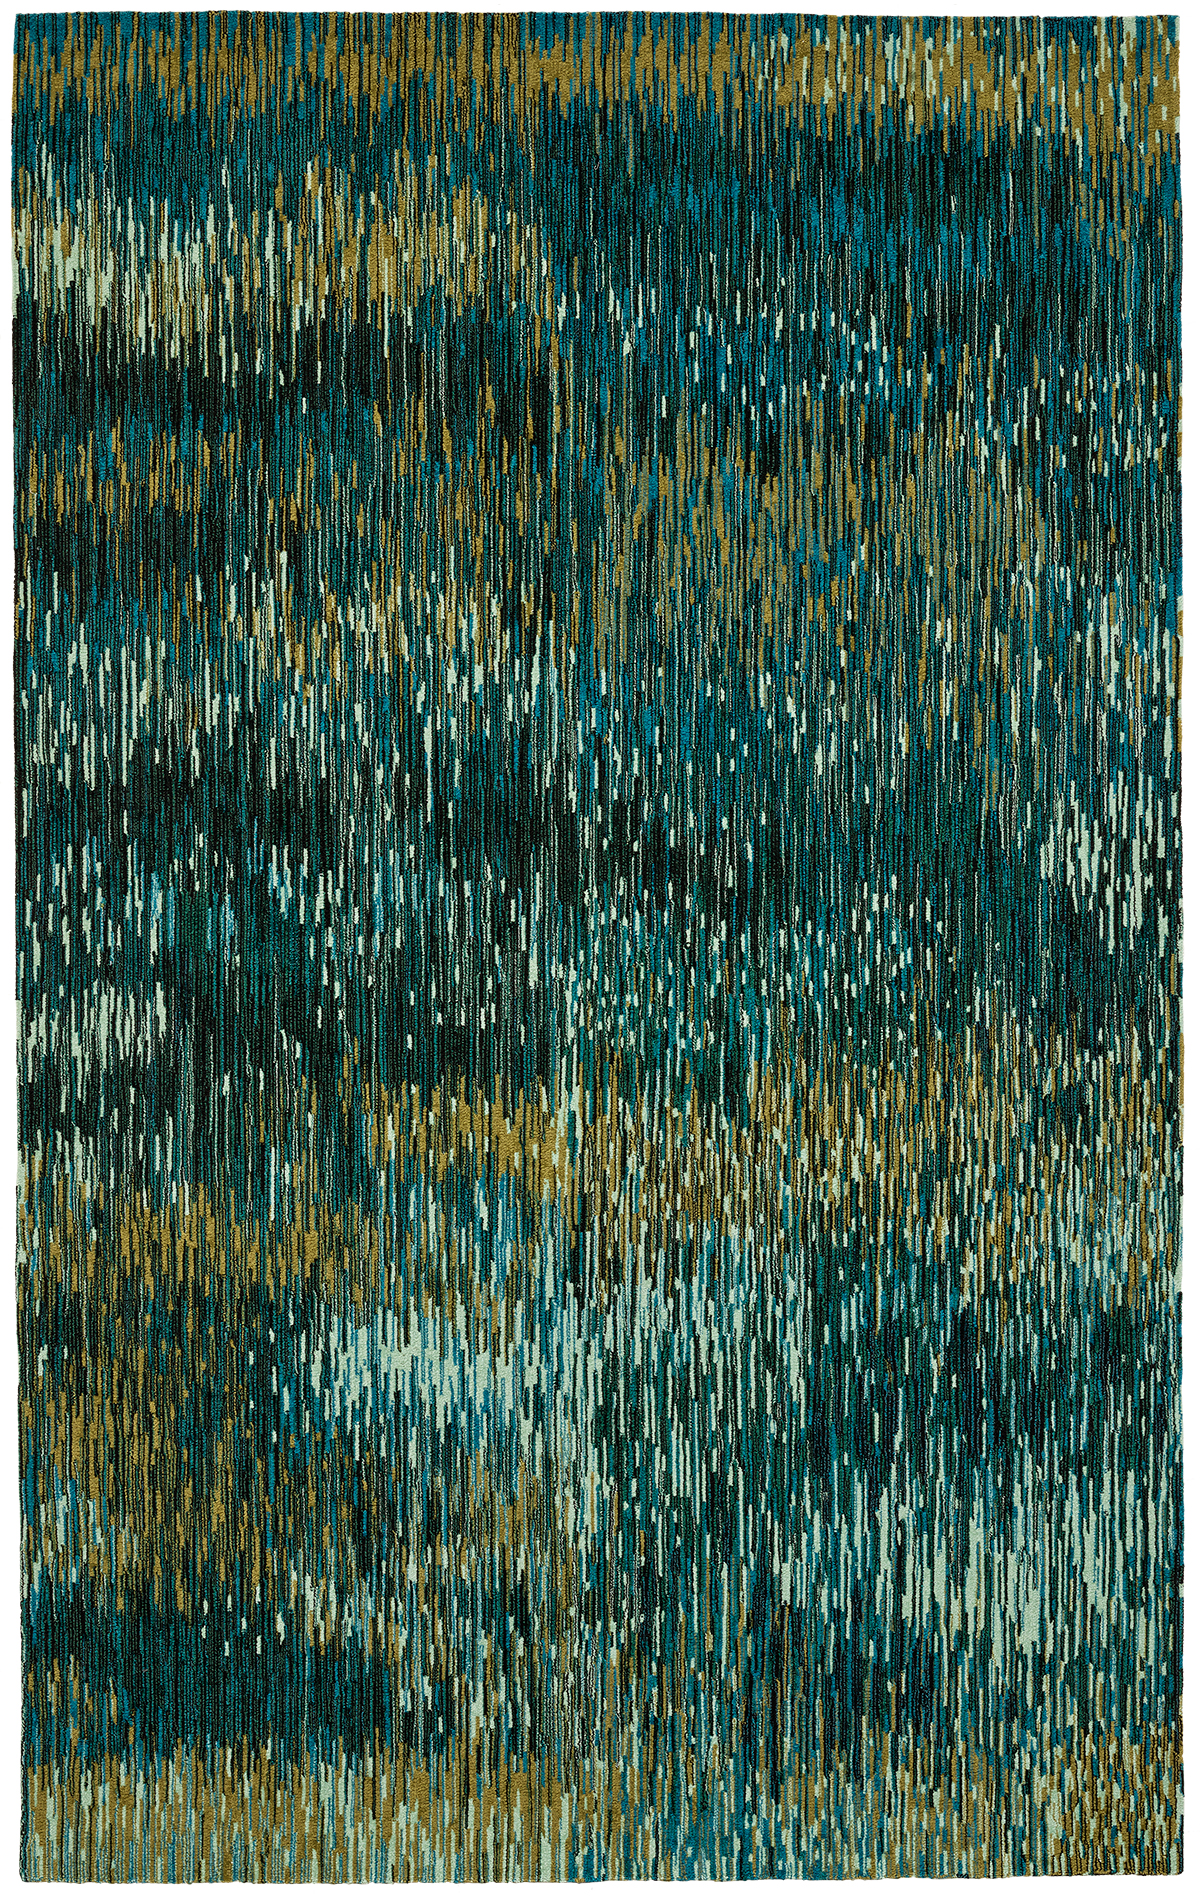 crosby_street_studios_products_CSS_Frequency_Impressionistic_RUG